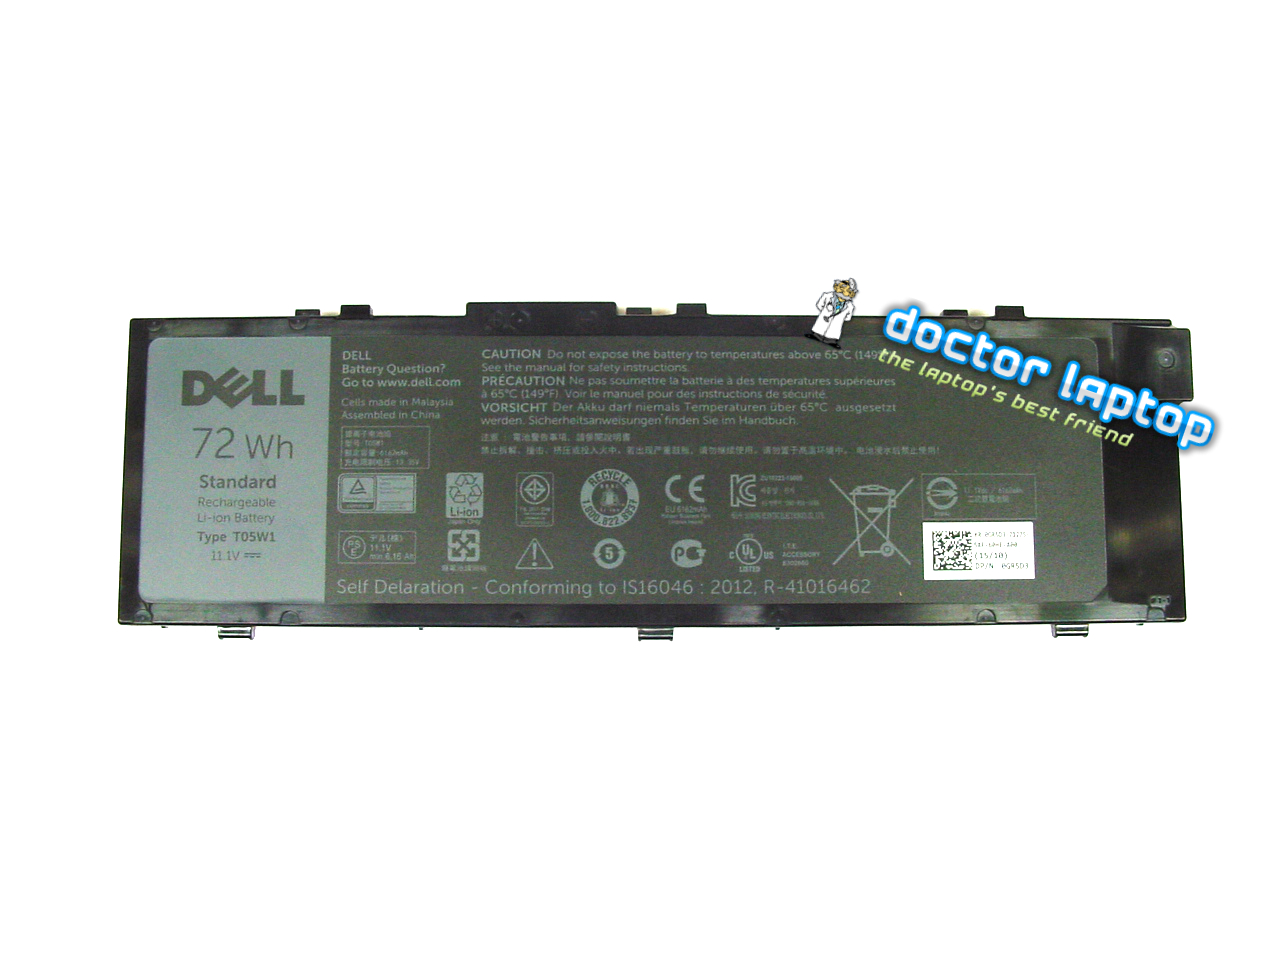 Baterie originala Dell Precision 17 7710 72 Wh